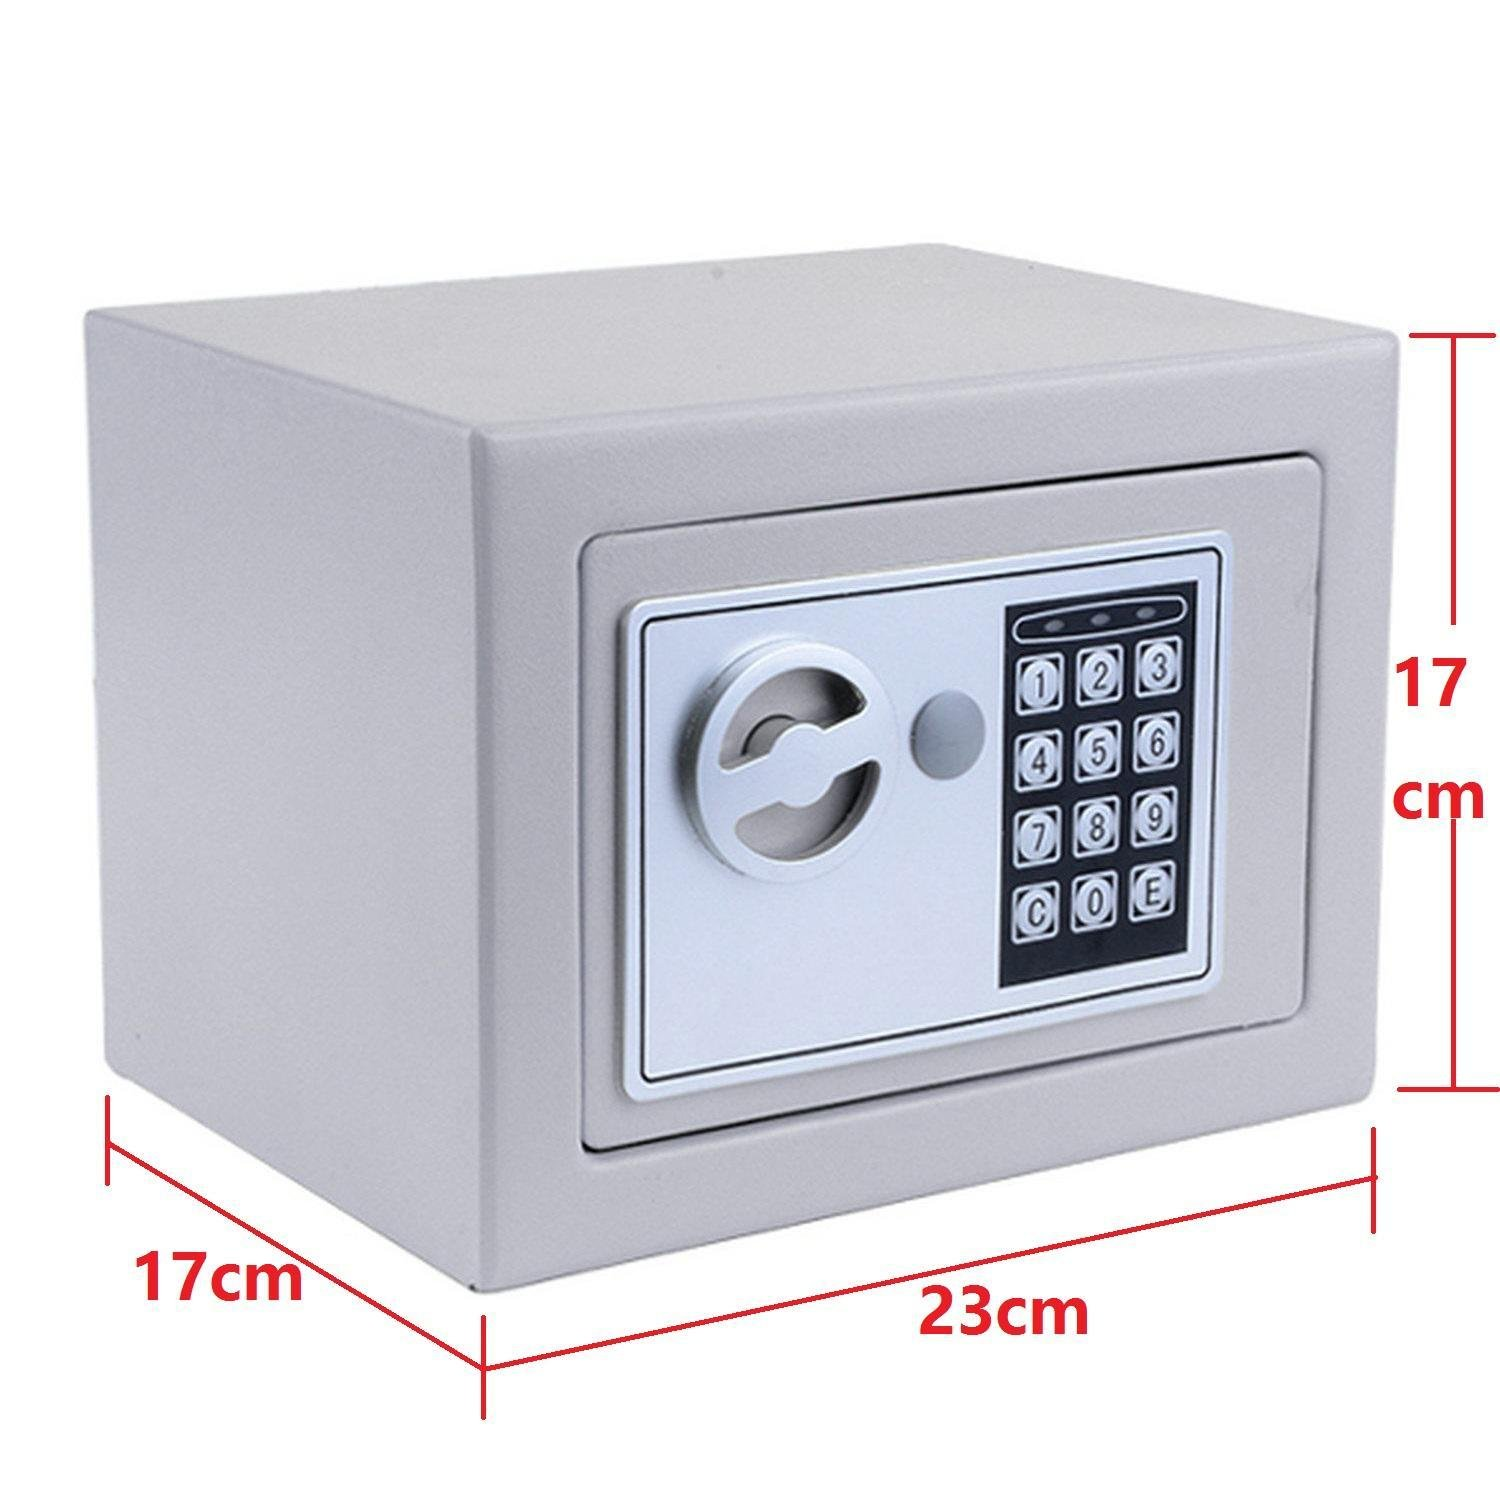 Digital Cabinet Safes Lockable Security Box Case Wall MountedBatteriesElectronicSafety Money Jewelry Cash Boxes for Home Dormitory Hotel Office (US Stock)